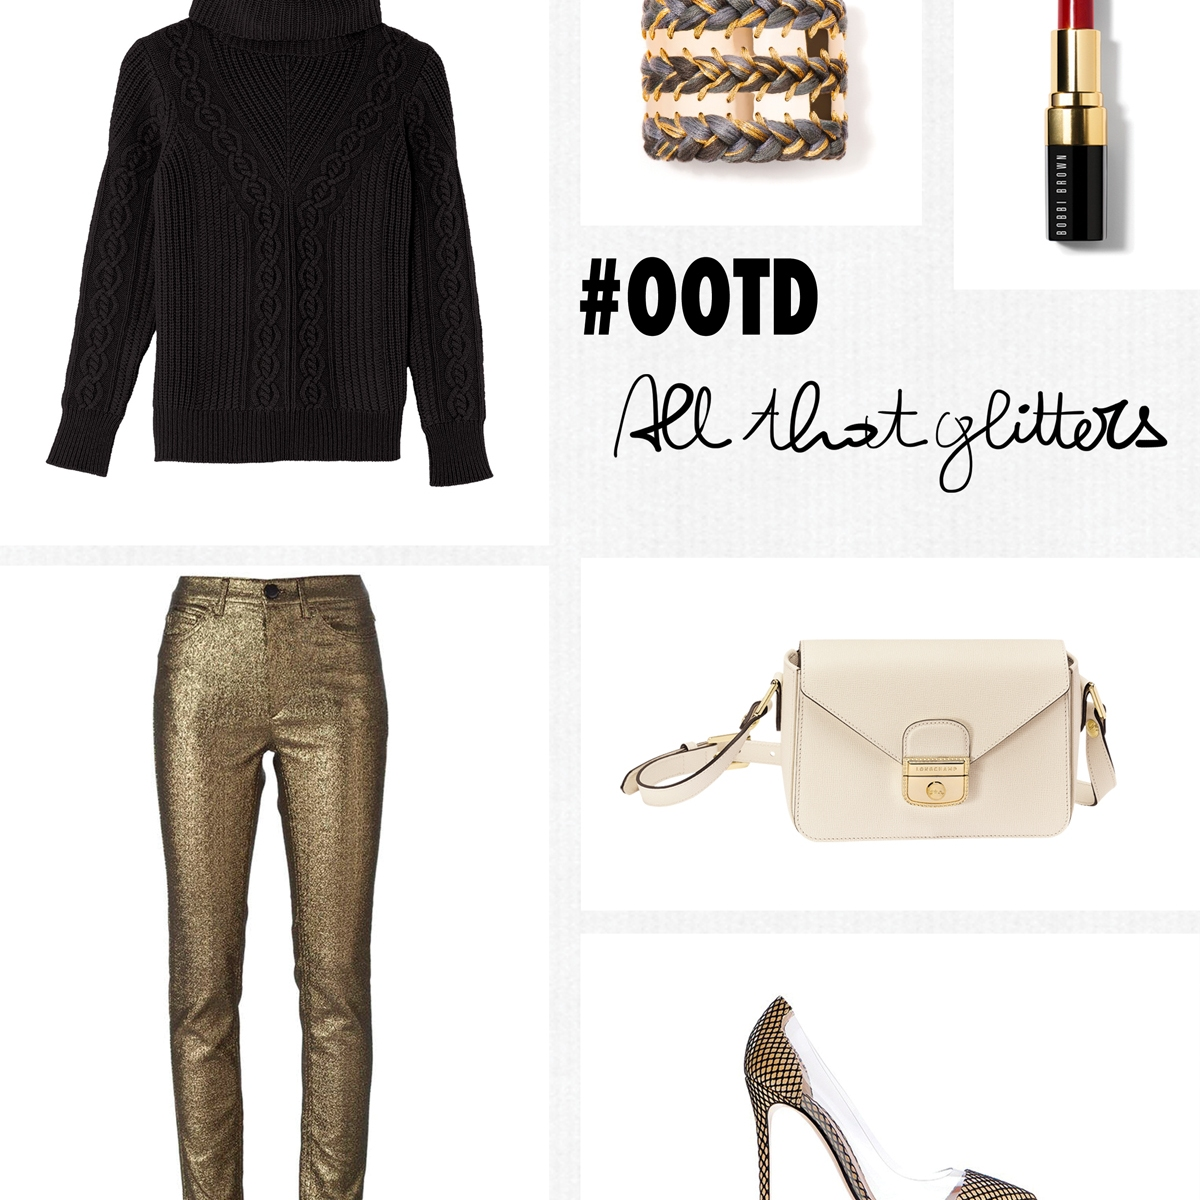 The French Dilettante, All that glitters, #OOTD